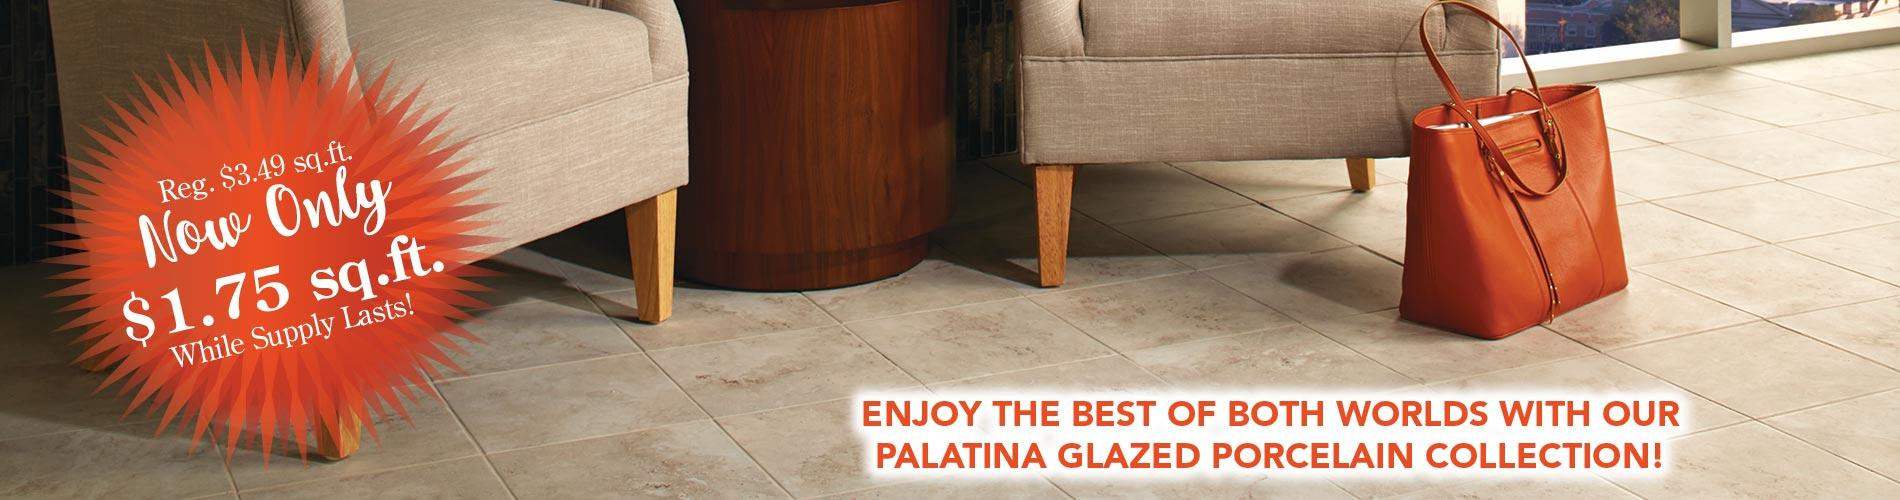 Enjoy the best of both worlds with our palatina glazed porcelain collection!  Reg. $3.49 sq.ft. now only $1.75 sq.ft. While Supply Lasts!